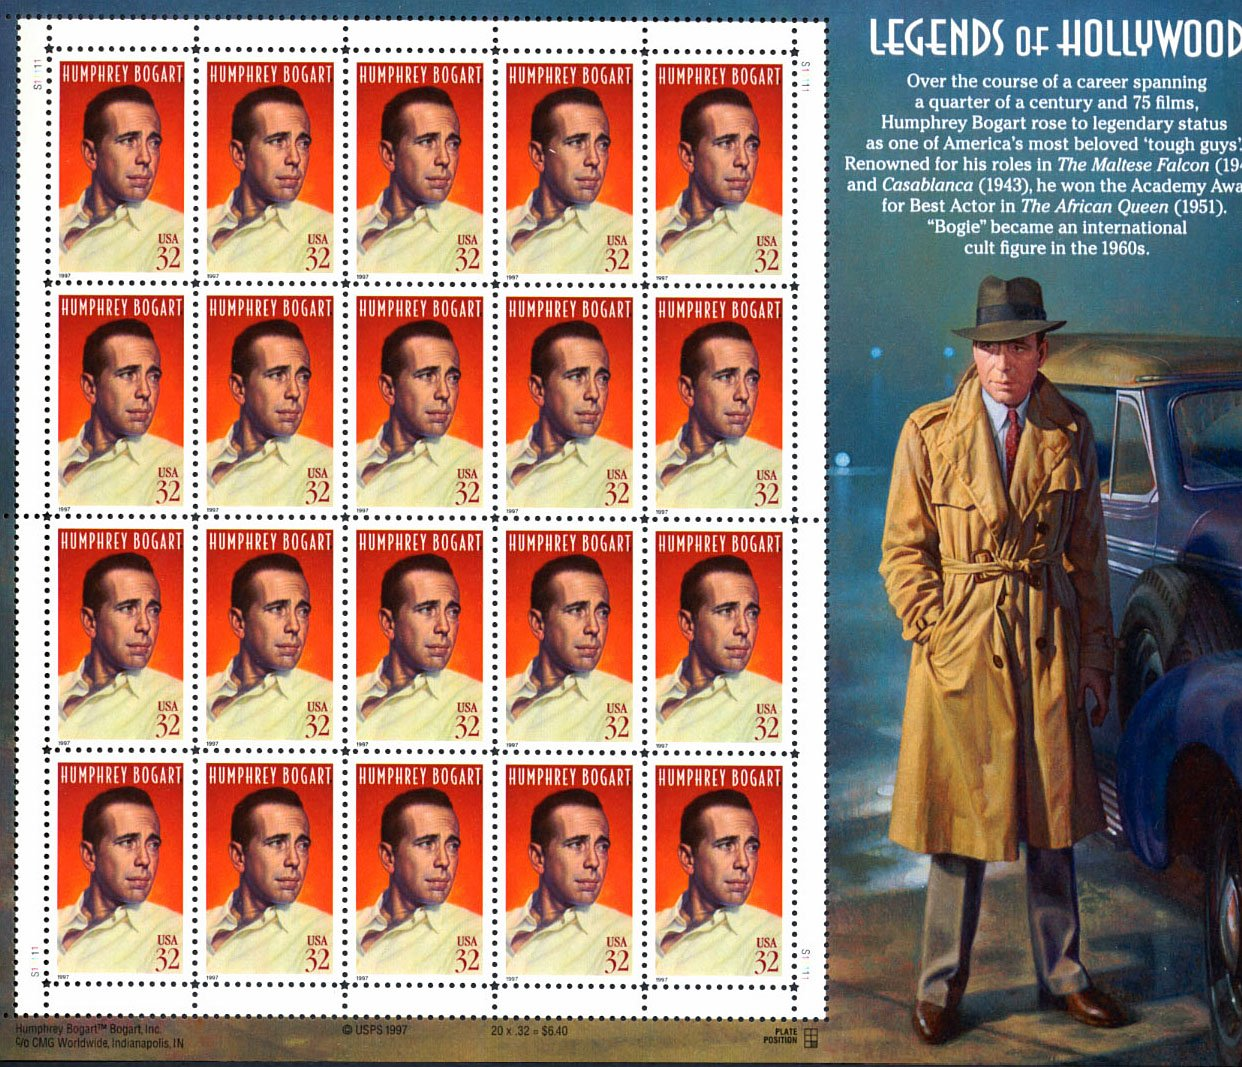 Humphrey Bogart Legends of Hollywood Collectible Sheet of 20 32 Cent Stamps by USPS